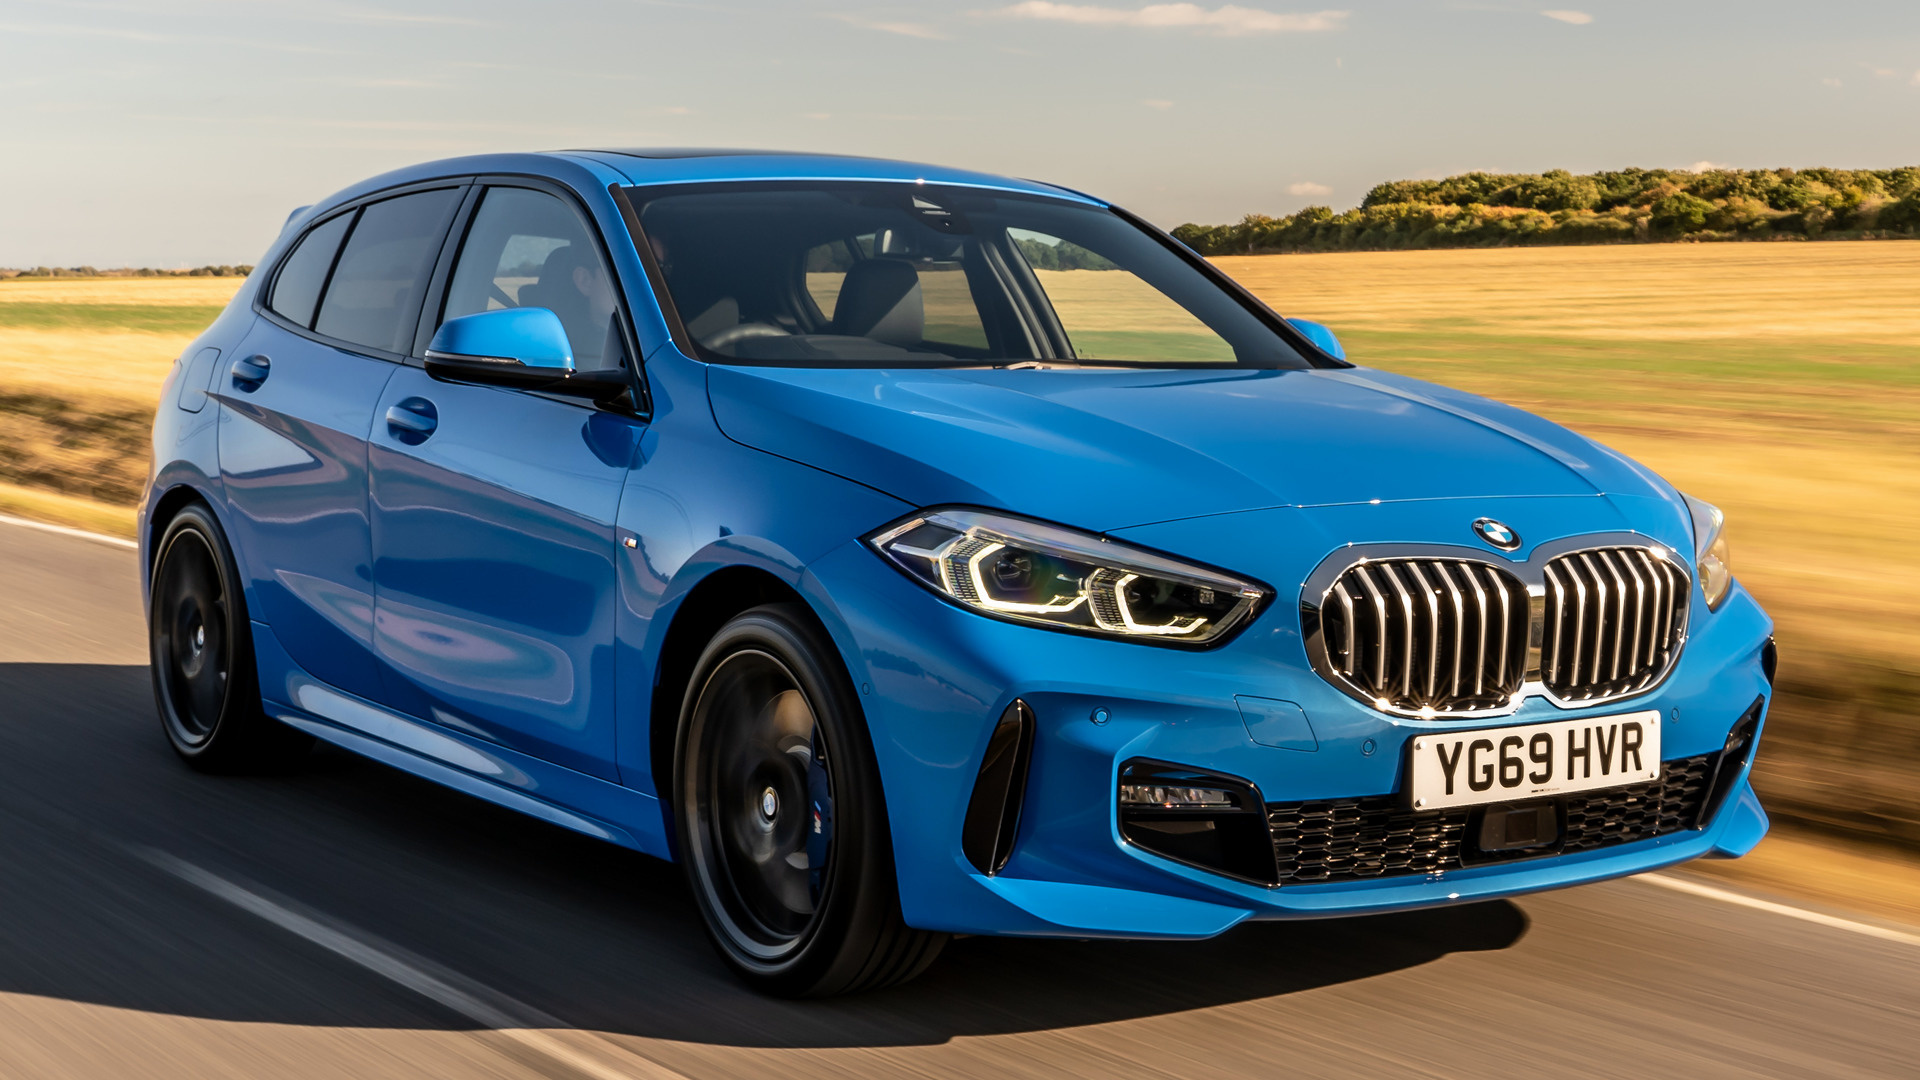 2019 BMW 1 Series M Sport (UK) - Wallpapers and HD Images ...